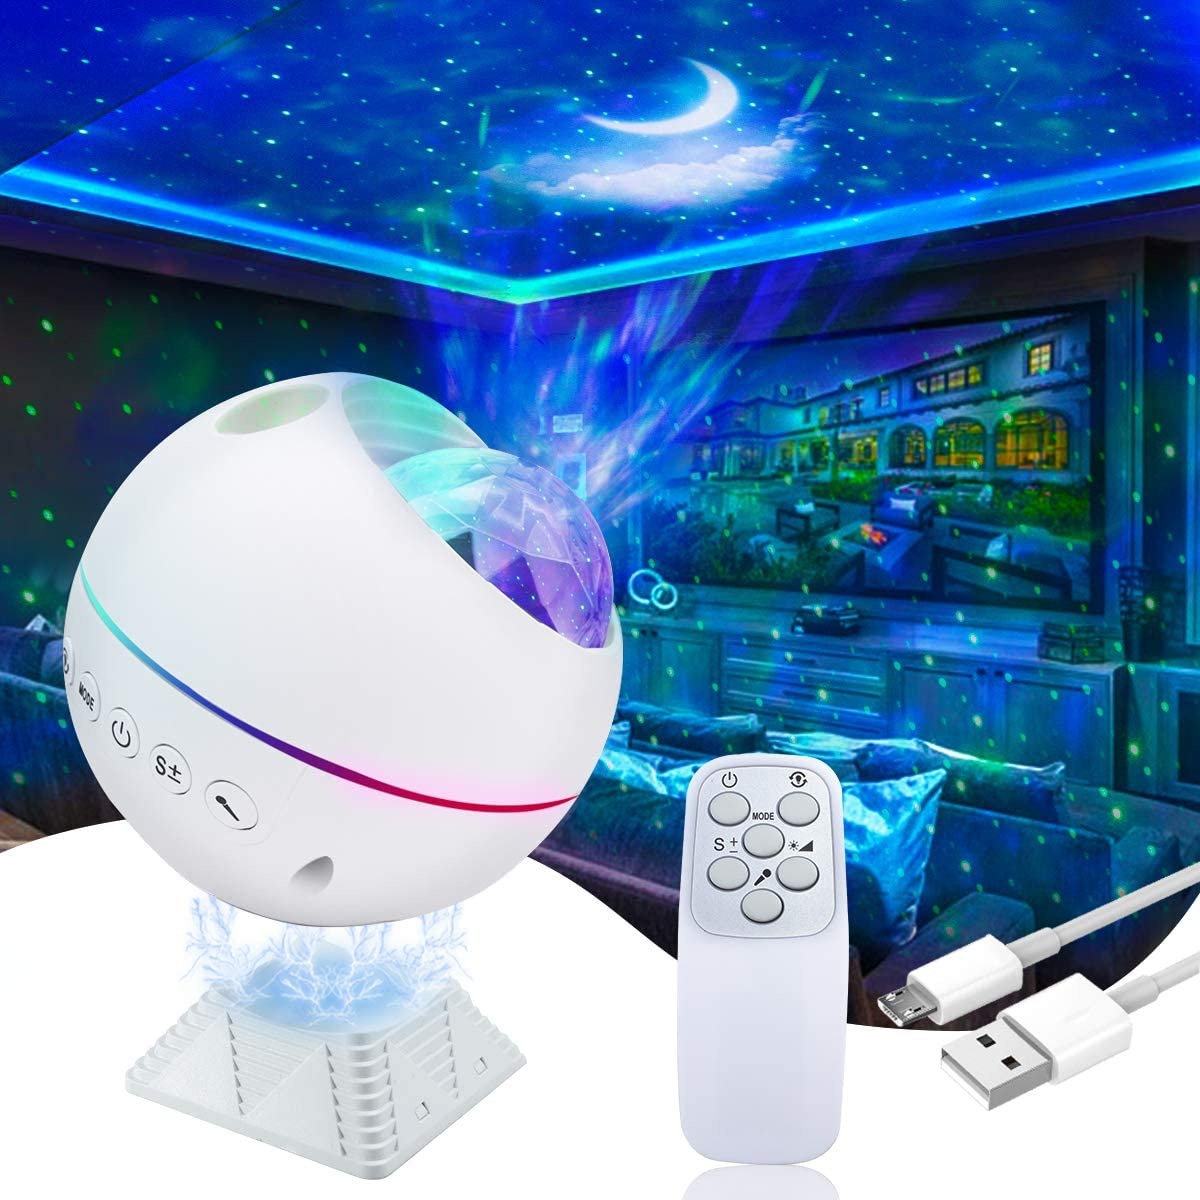 Galaxy Projector AKEPO 3 in 1 Night Be for Light Branded Large discharge sale goods Star